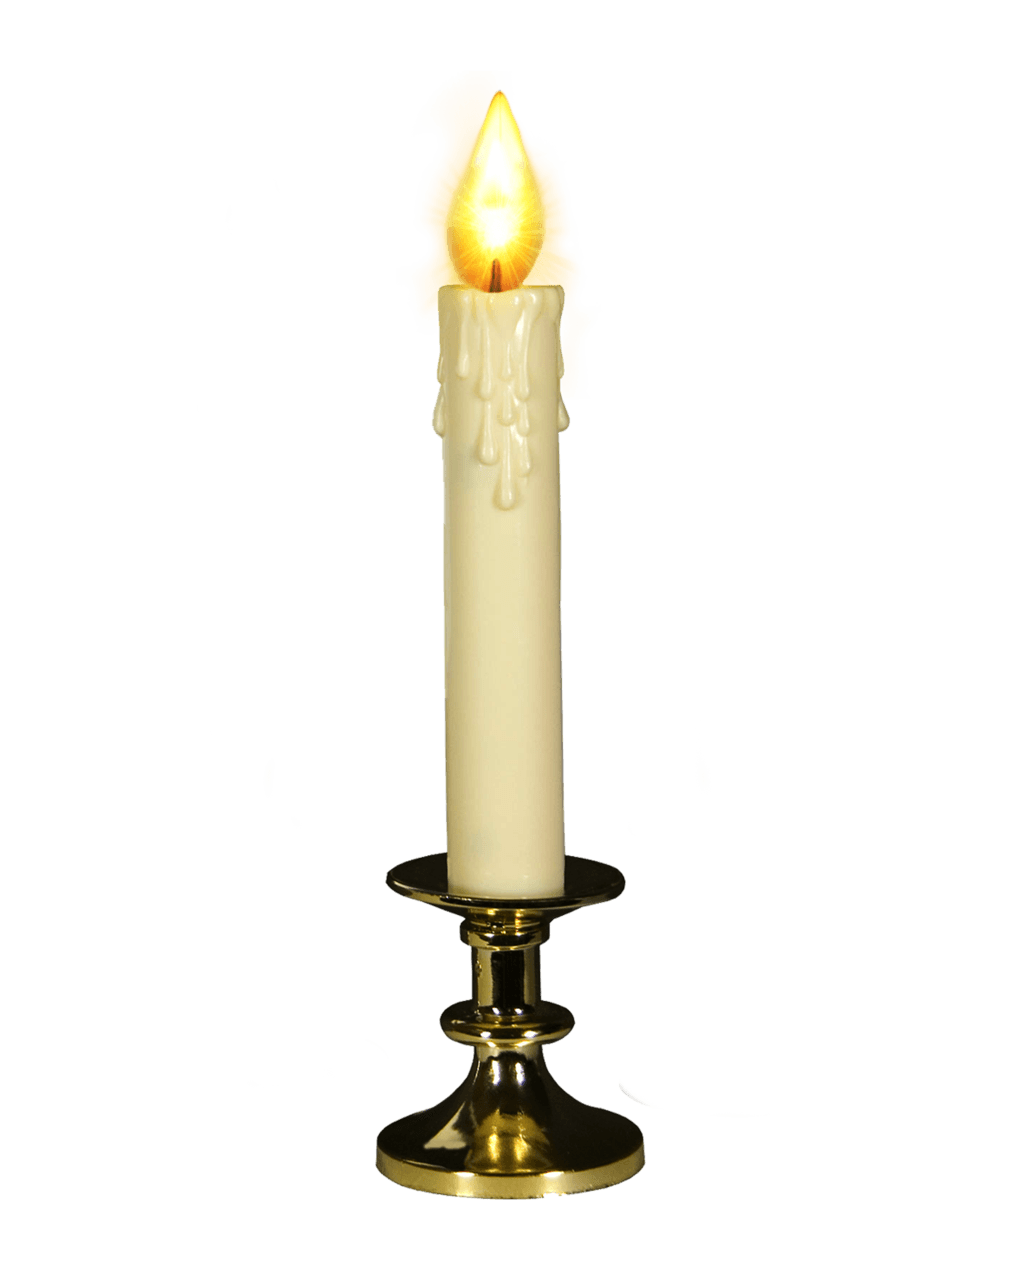 Transparent church background. Candle png images stickpng